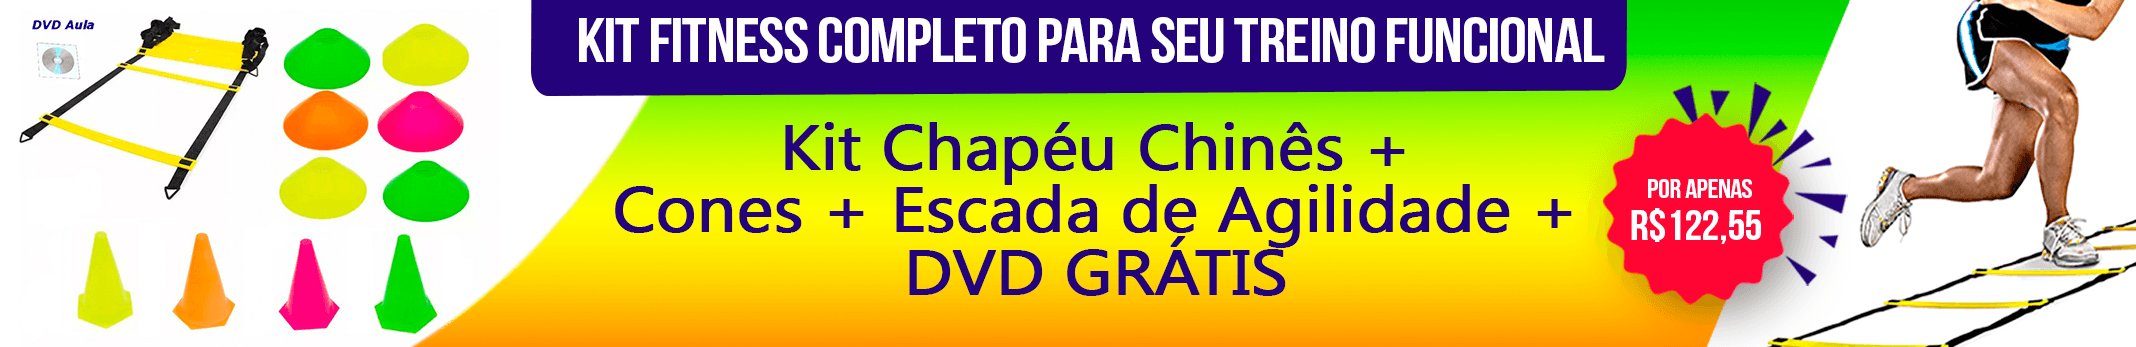 Banner Kit Chapeu Chines + Cones + Escada de Agilidade + DVD Natural Fitness